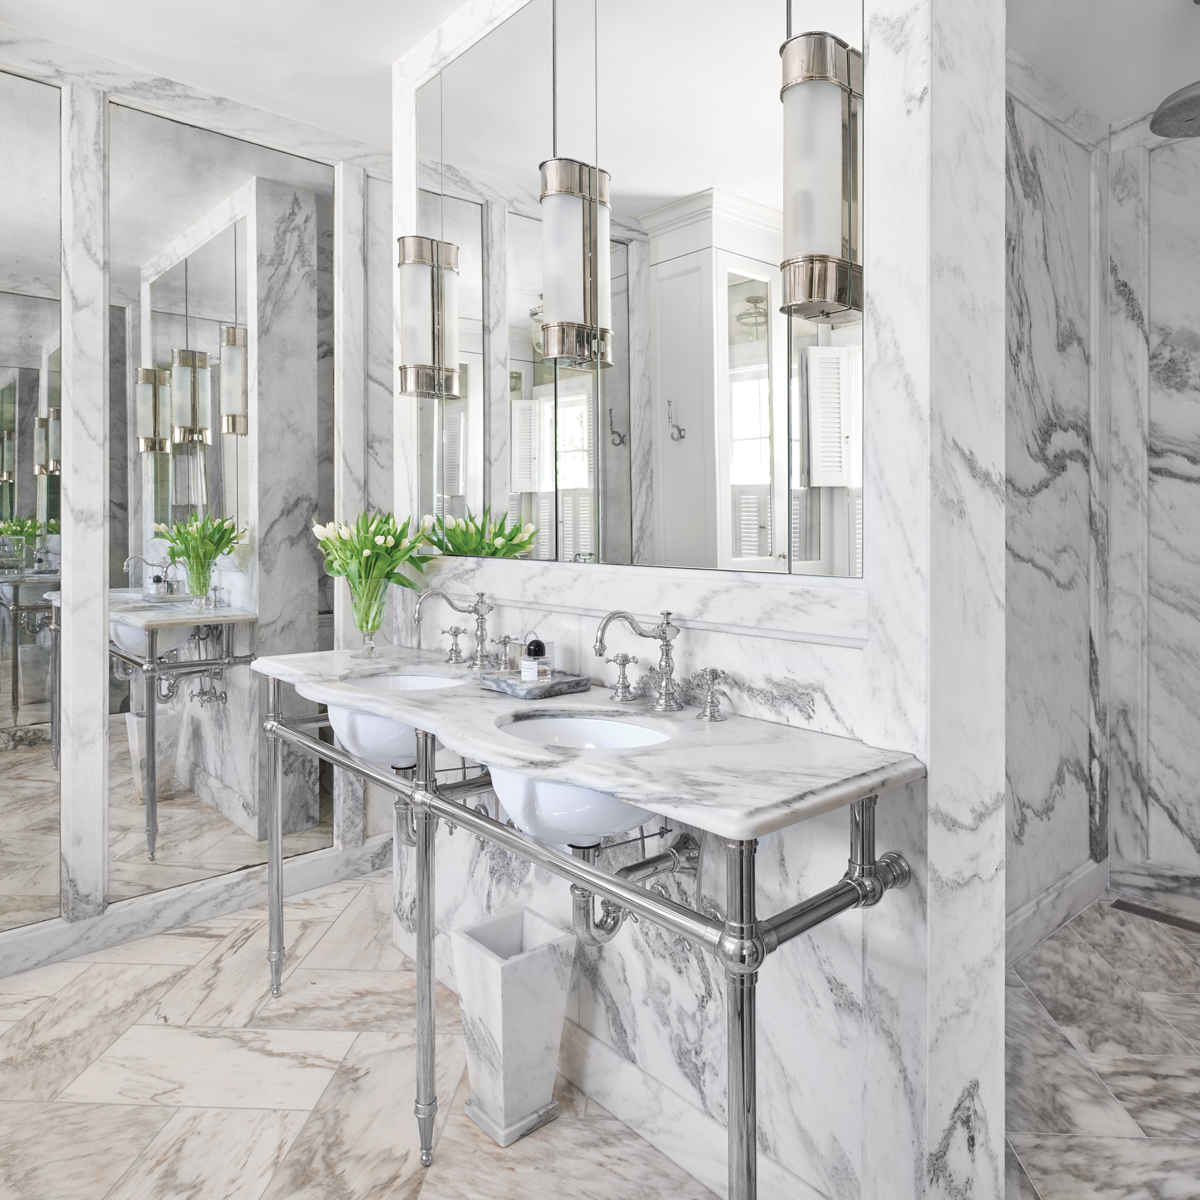 Masterbathrooms: This Gorgeous Master Bath Came From Classic Inspiration